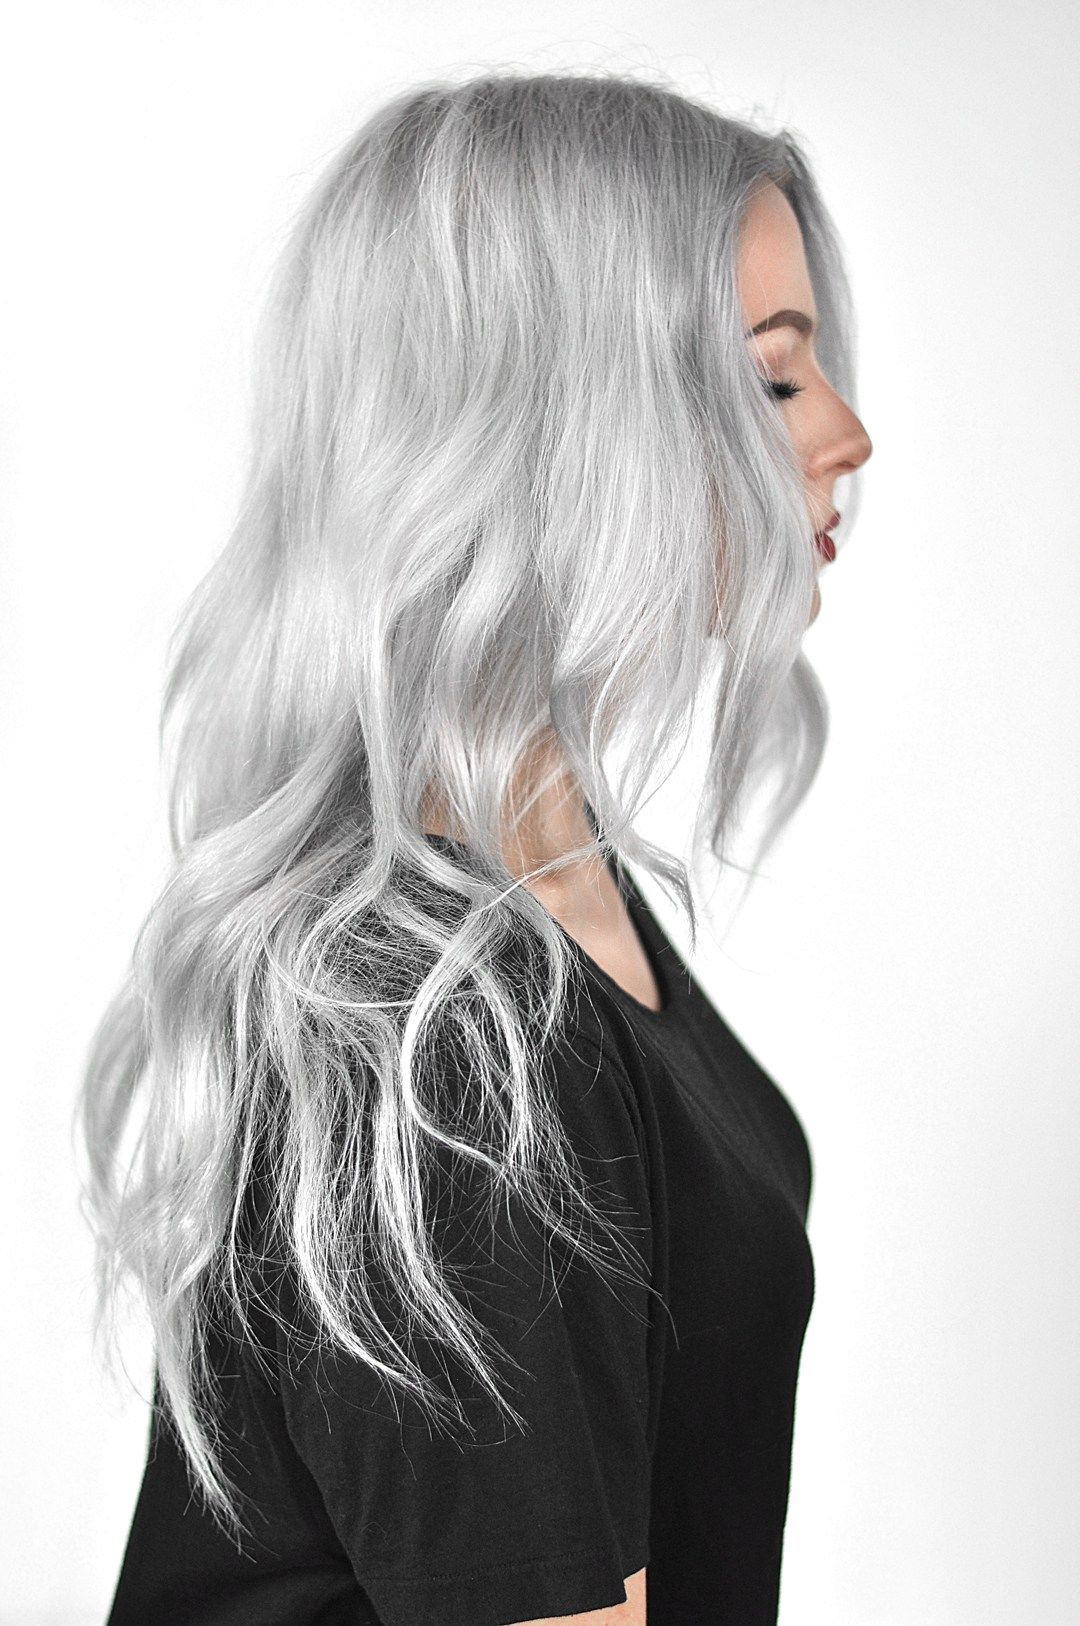 2021 New Lace Front Wigs Yellow Bob Wig Grey Hair At 27 Red And Orange Wig